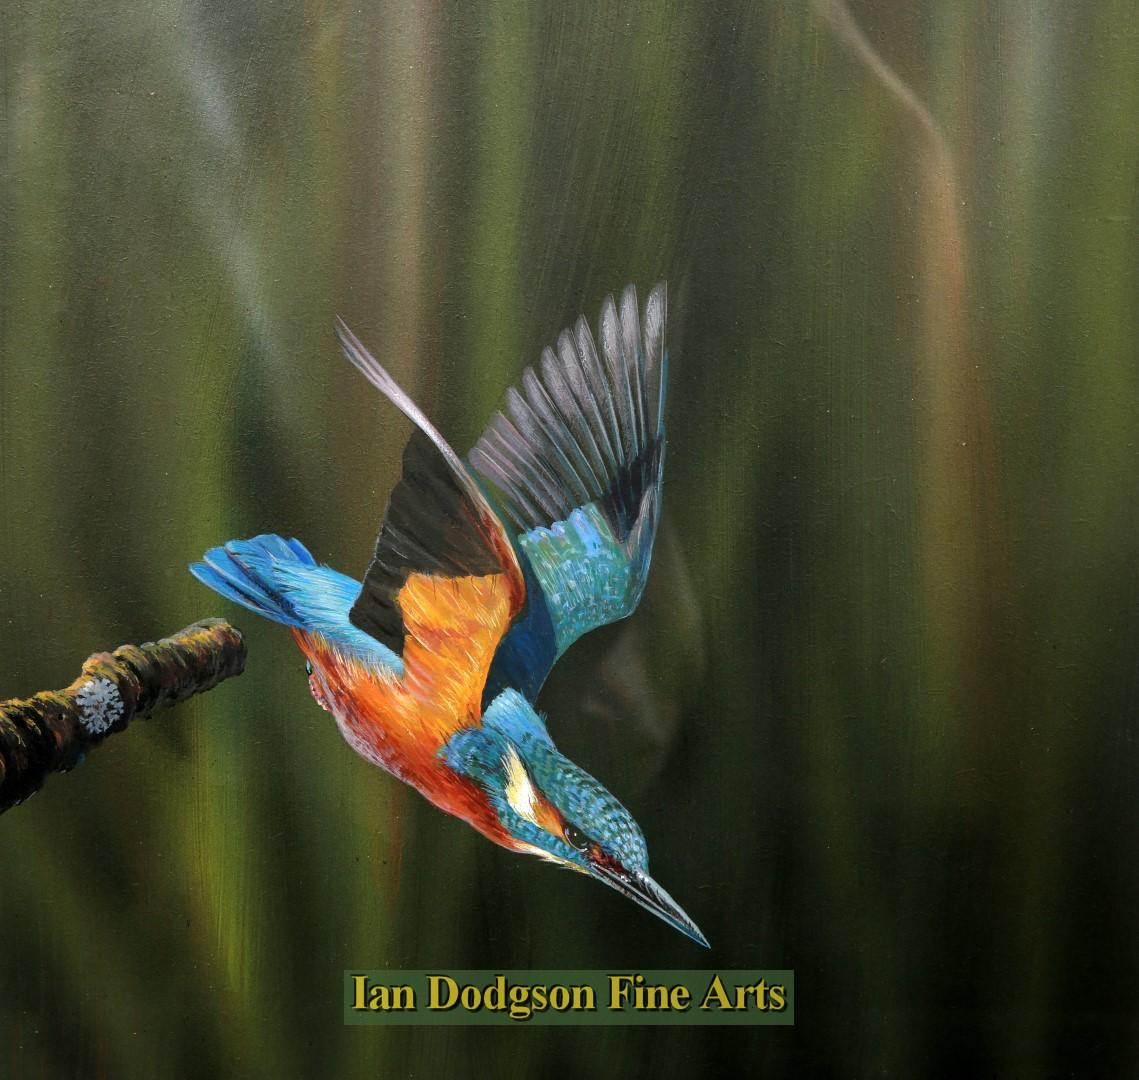 The Kingfisher by Richard Duffield